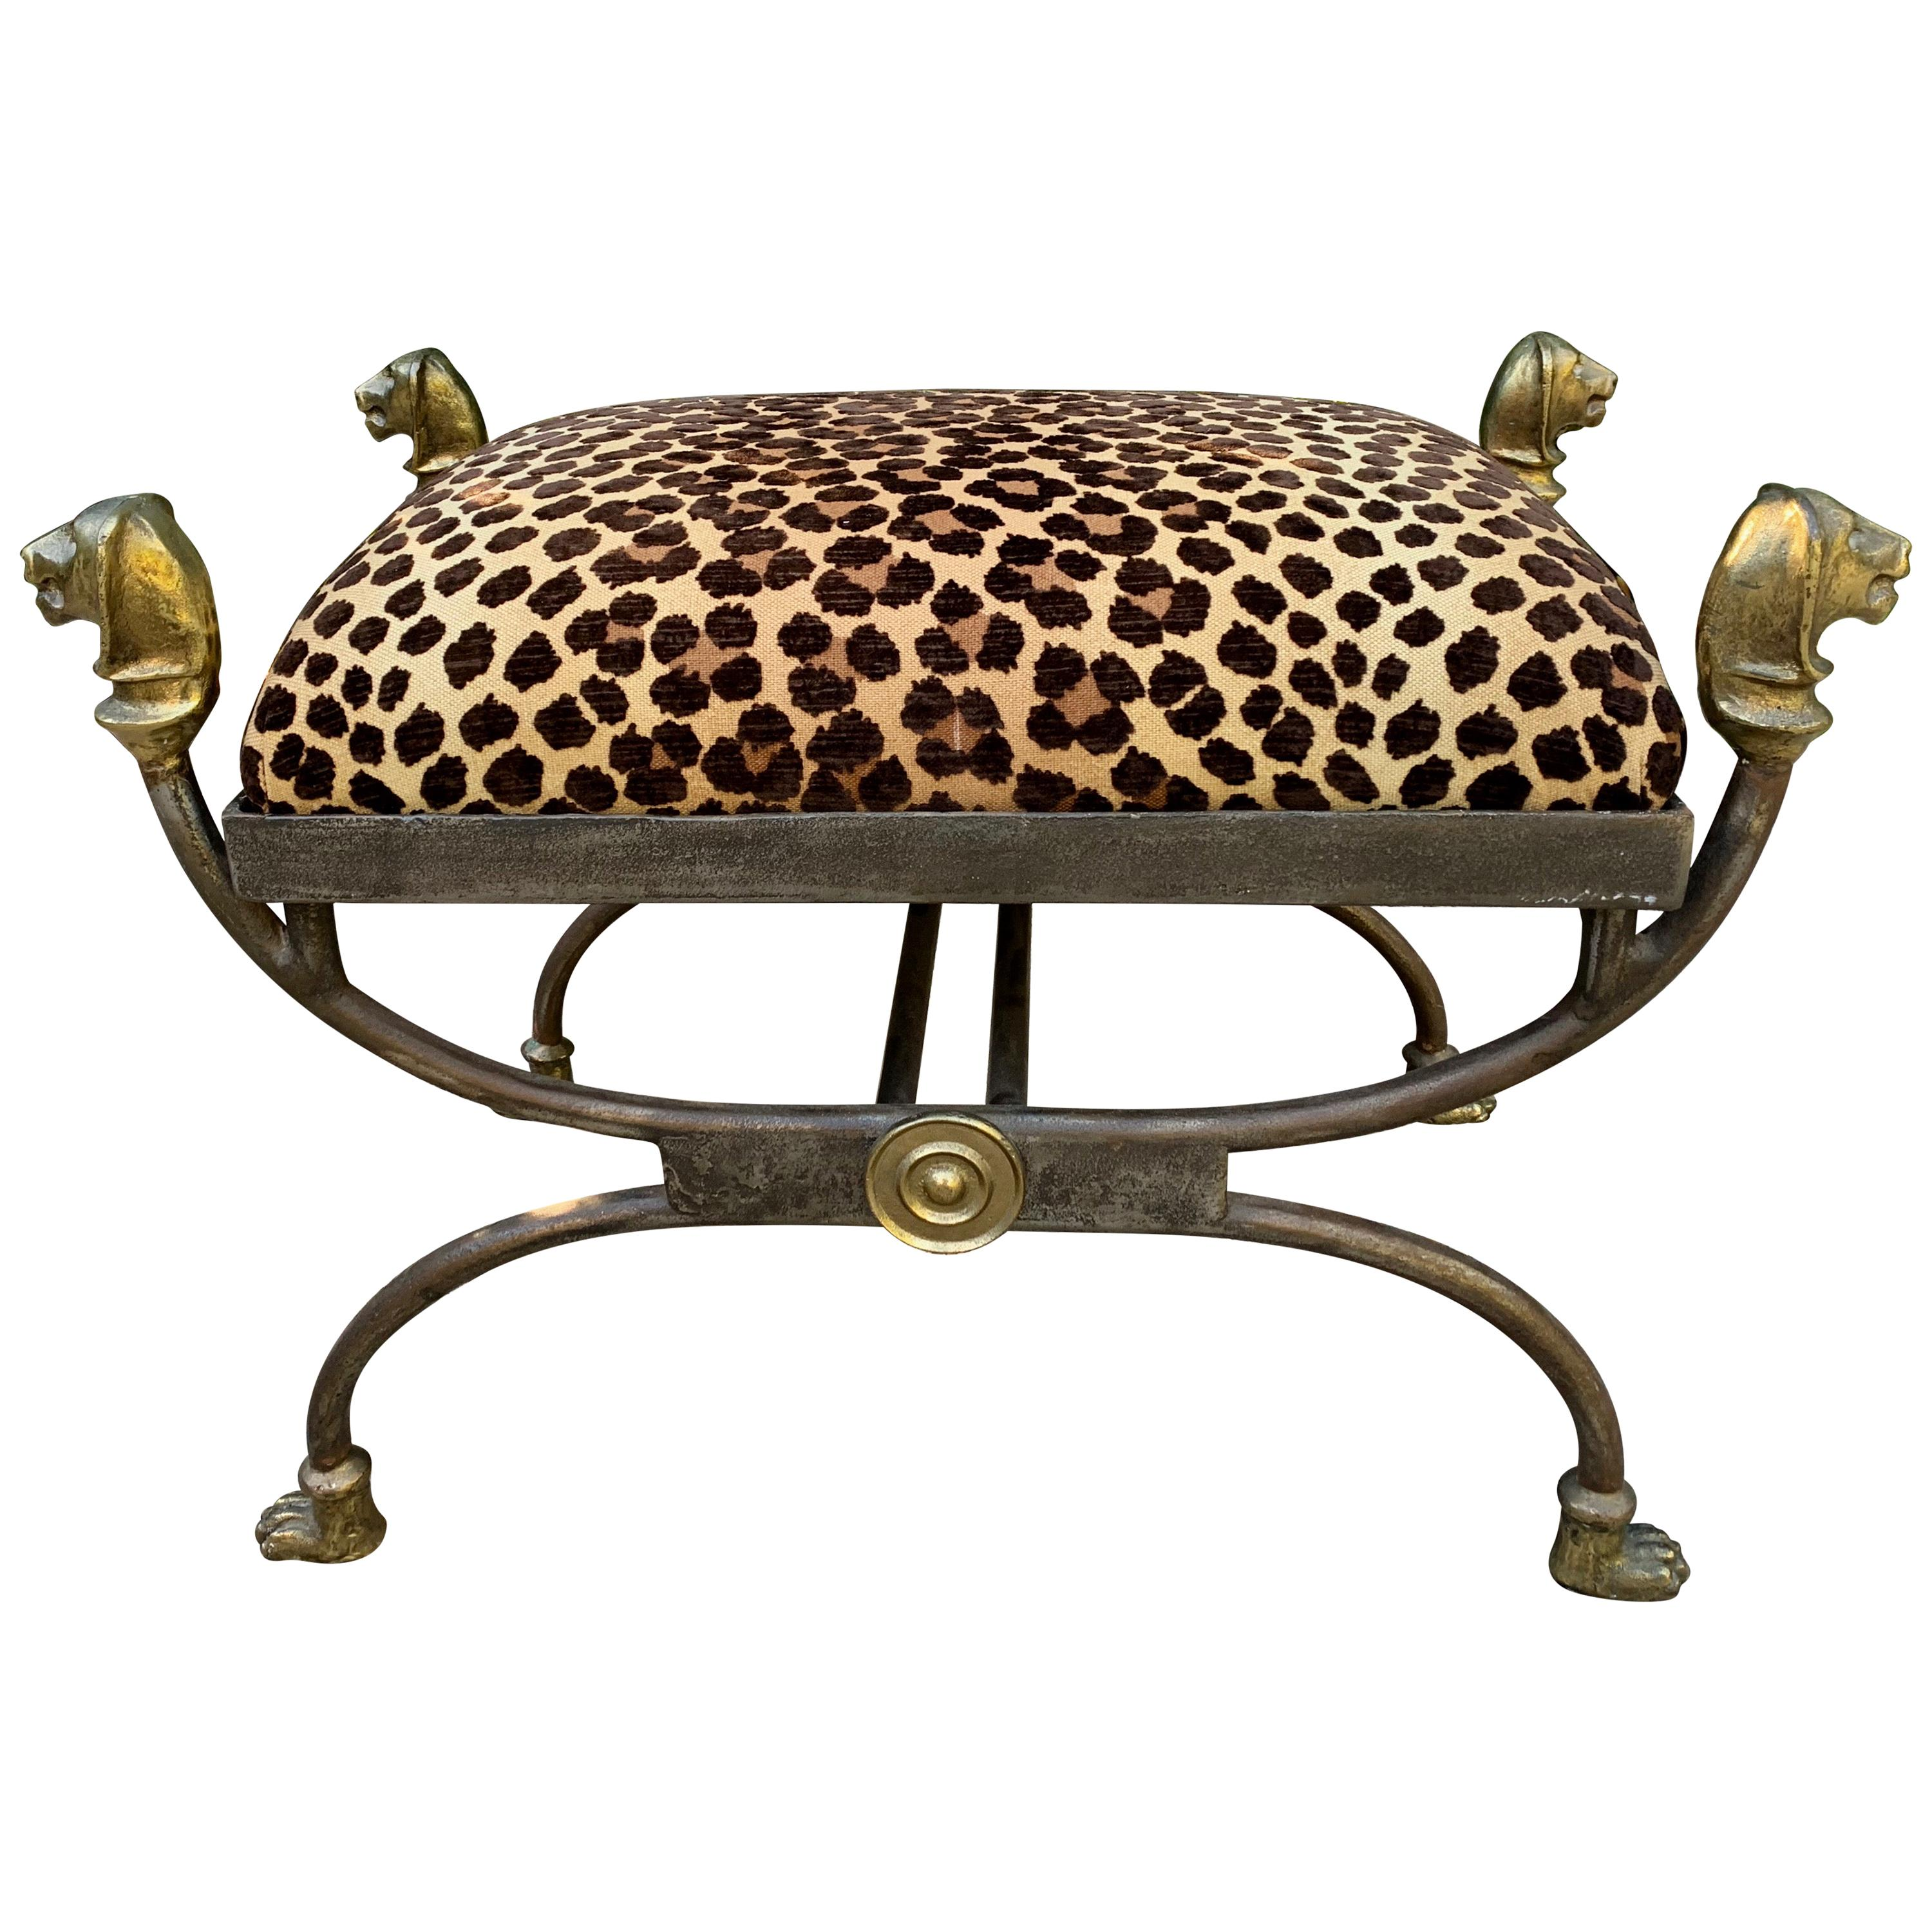 Wrought Iron Stool with Bronze Details in the Style of Giacometti